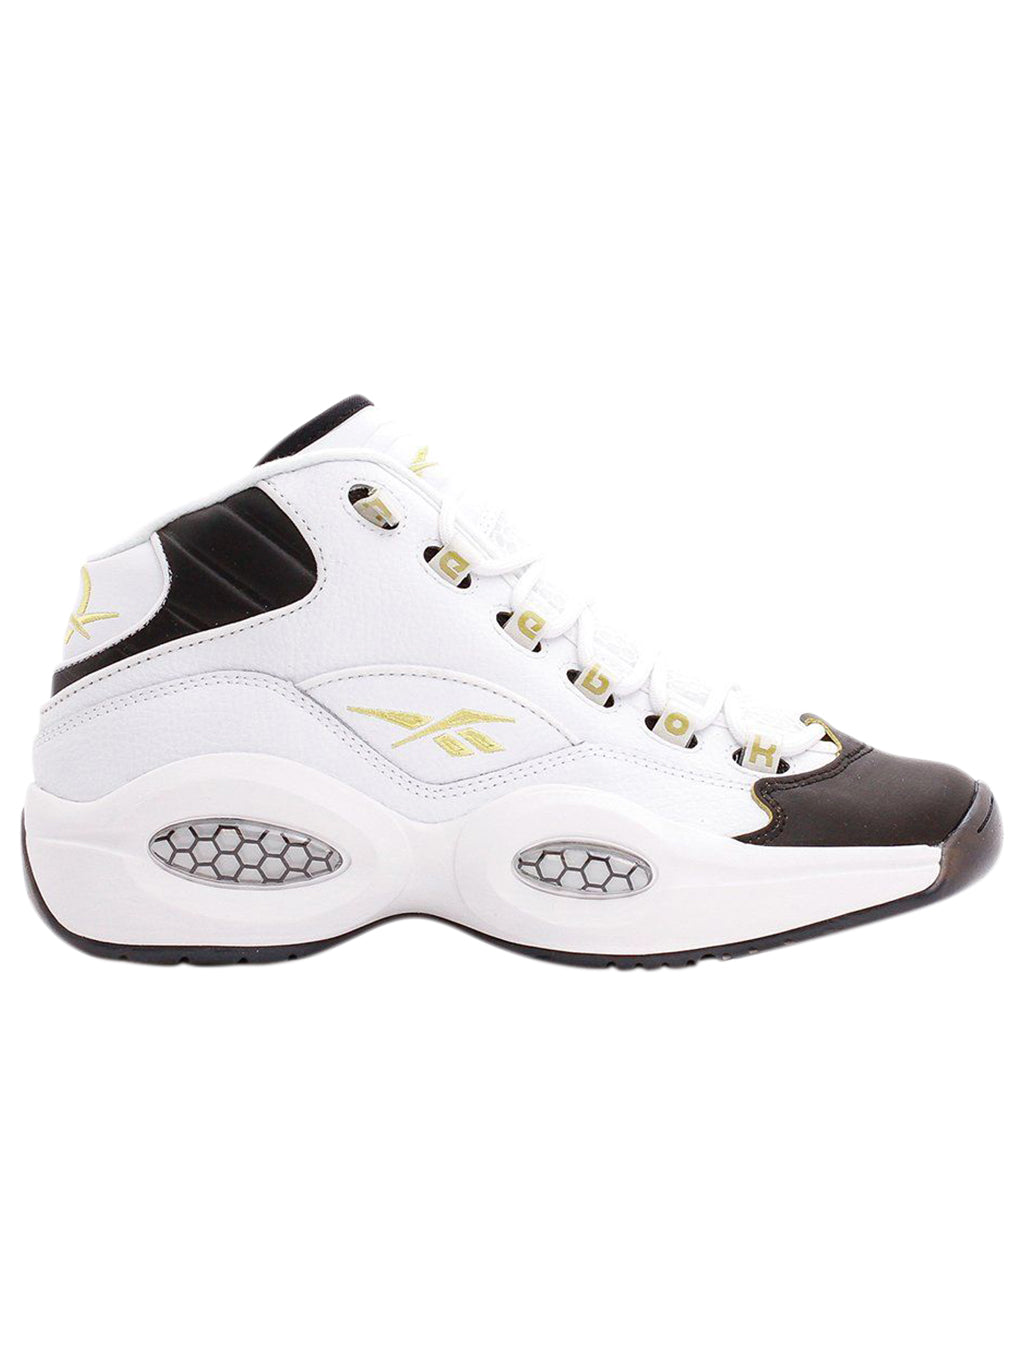 Multi Junior Question Allen Iverson Sneakers